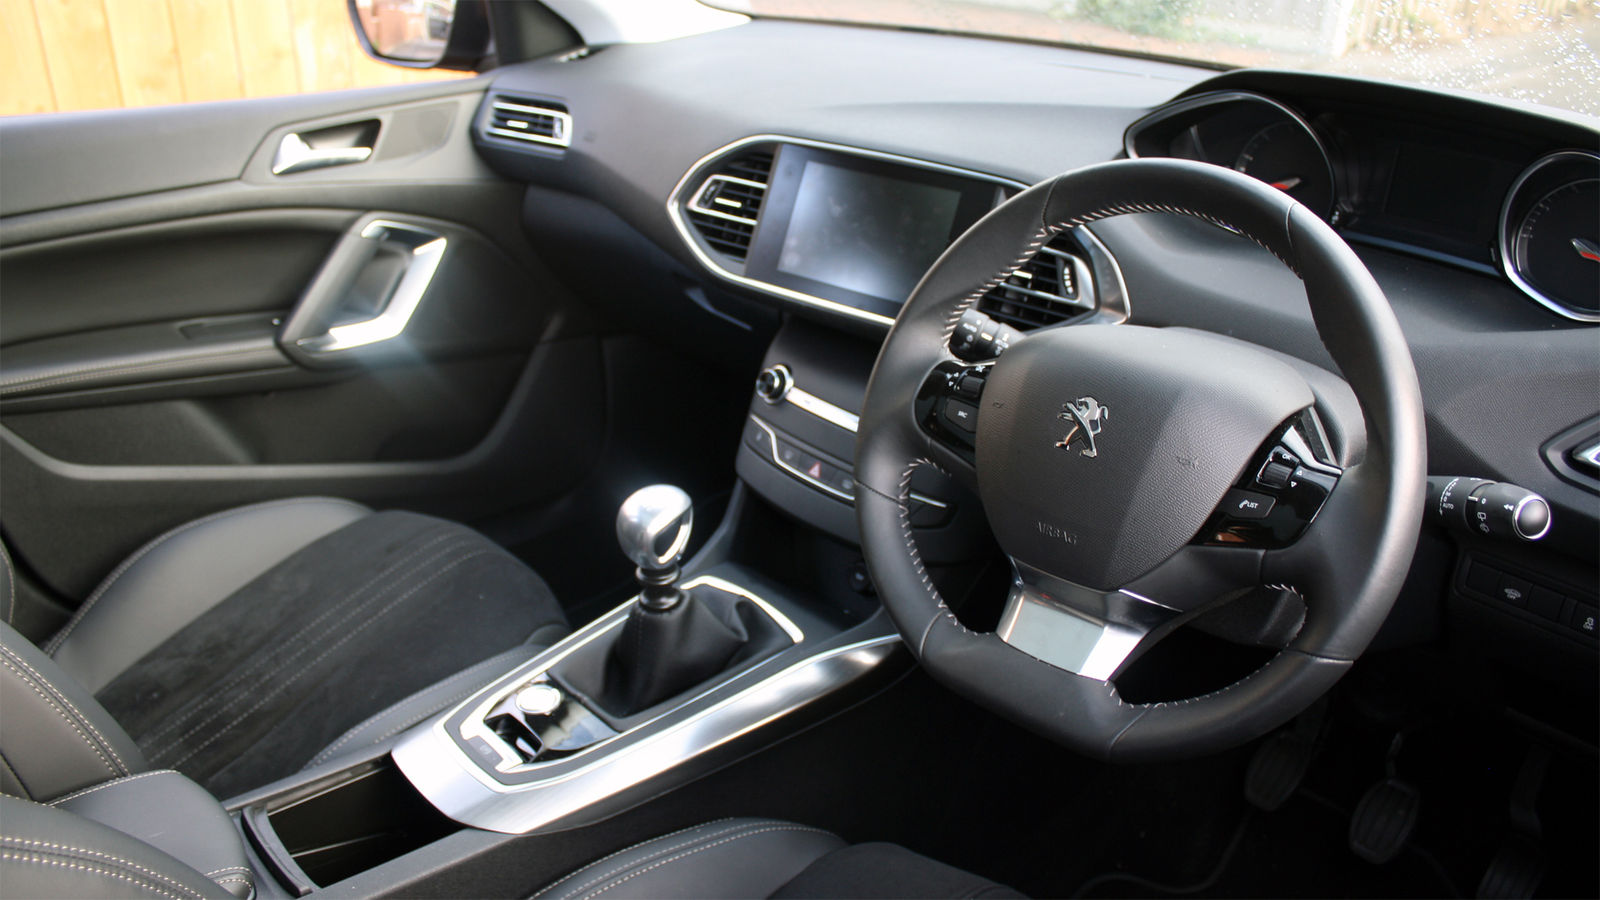 2015 peugeot 308 1 2 uk road test review carwow for Interior peugeot 308